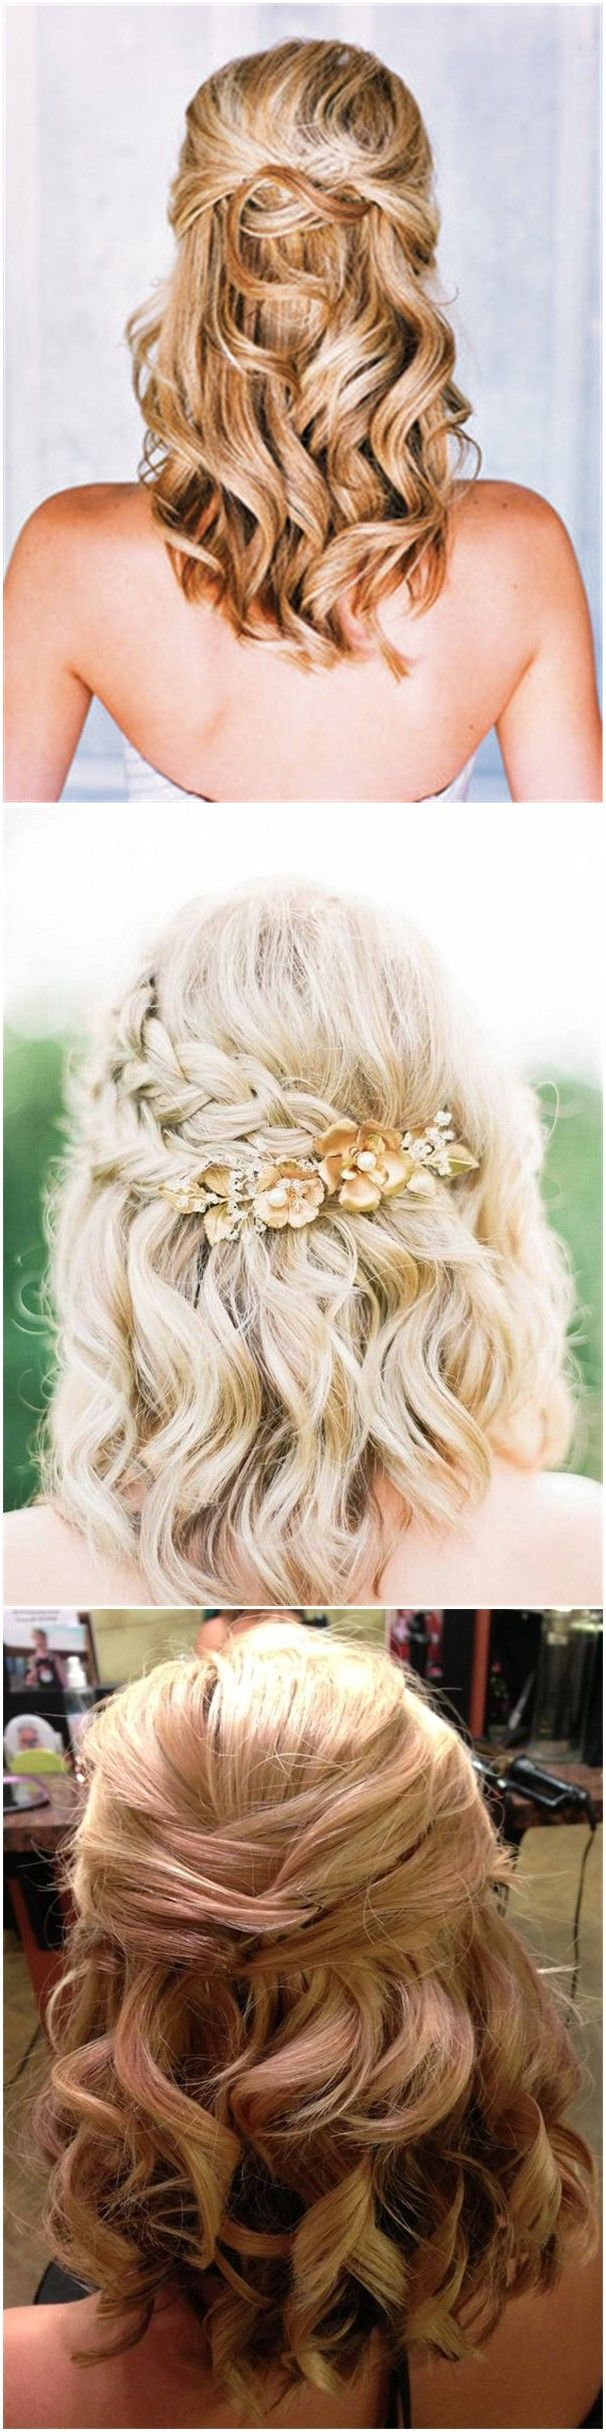 Wedding Hairstyles U00bb 24 Lovely Medium-length Hairstyles For Fall Weddings U00bbu2026 | Hair And Beauty